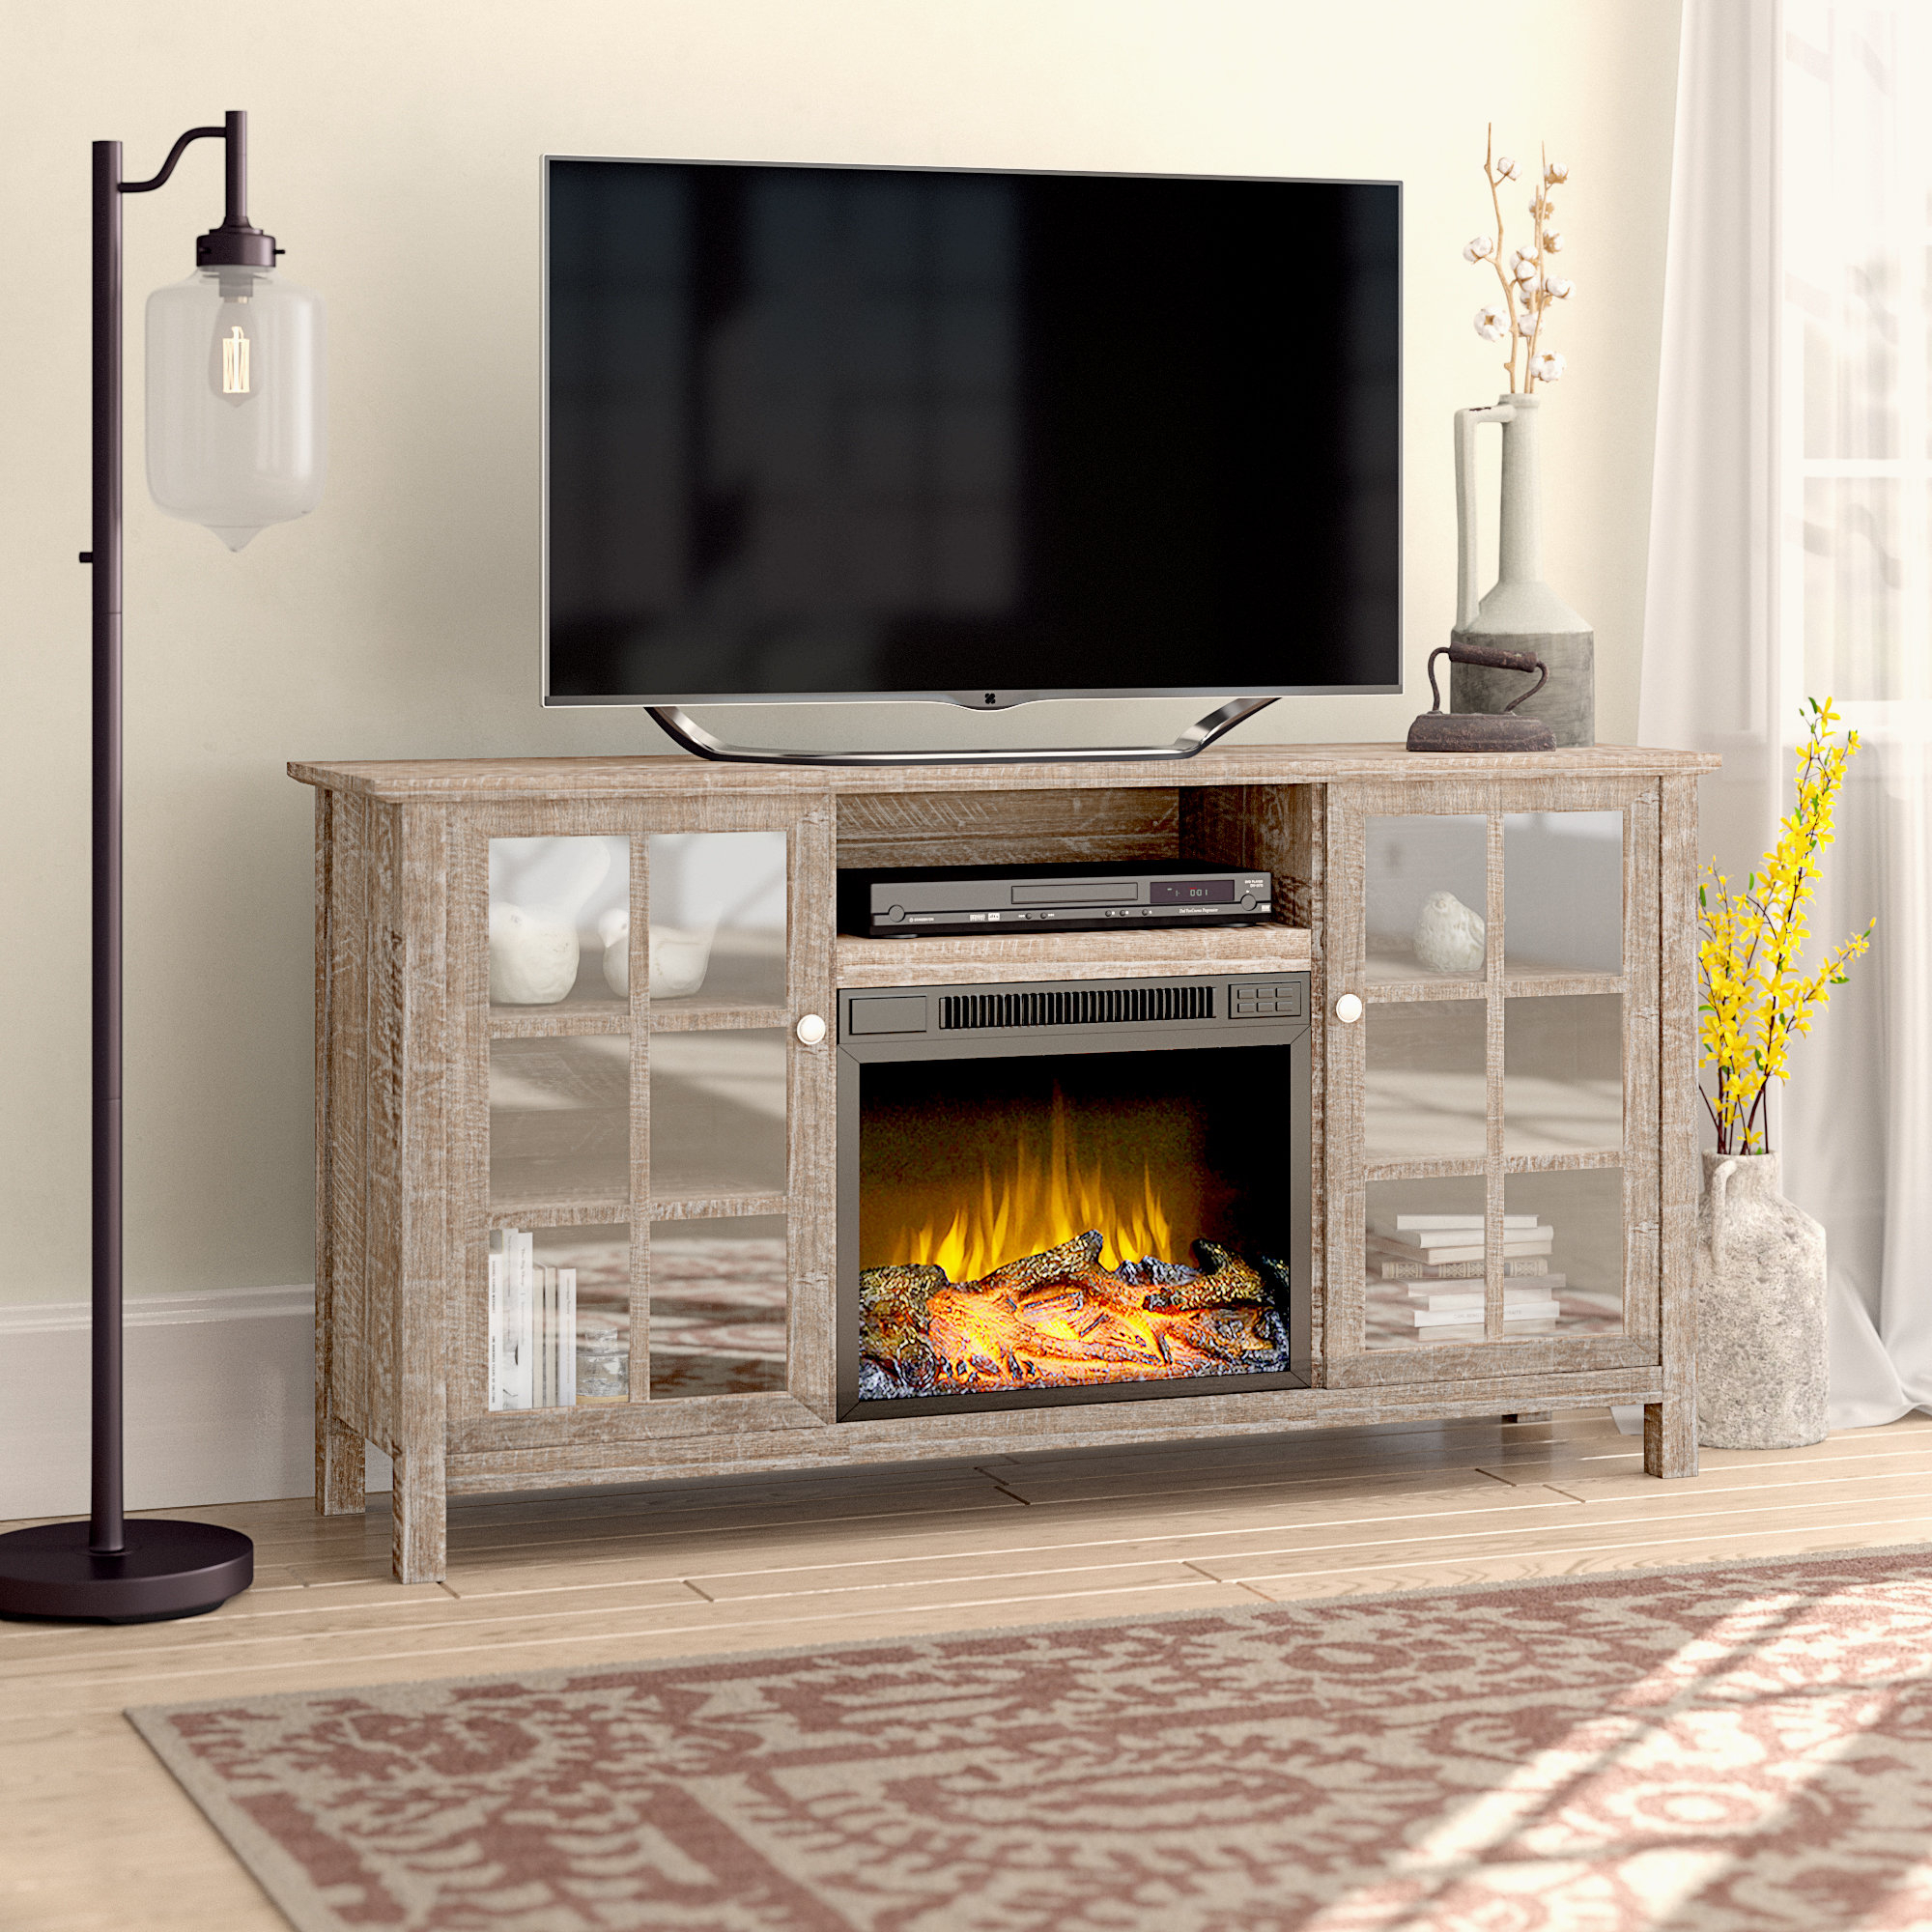 Laurel Foundry Modern Farmhouse Benoit Tv Stand For Tvs Up To 65 inside Caden 63 Inch Tv Stands (Image 14 of 30)